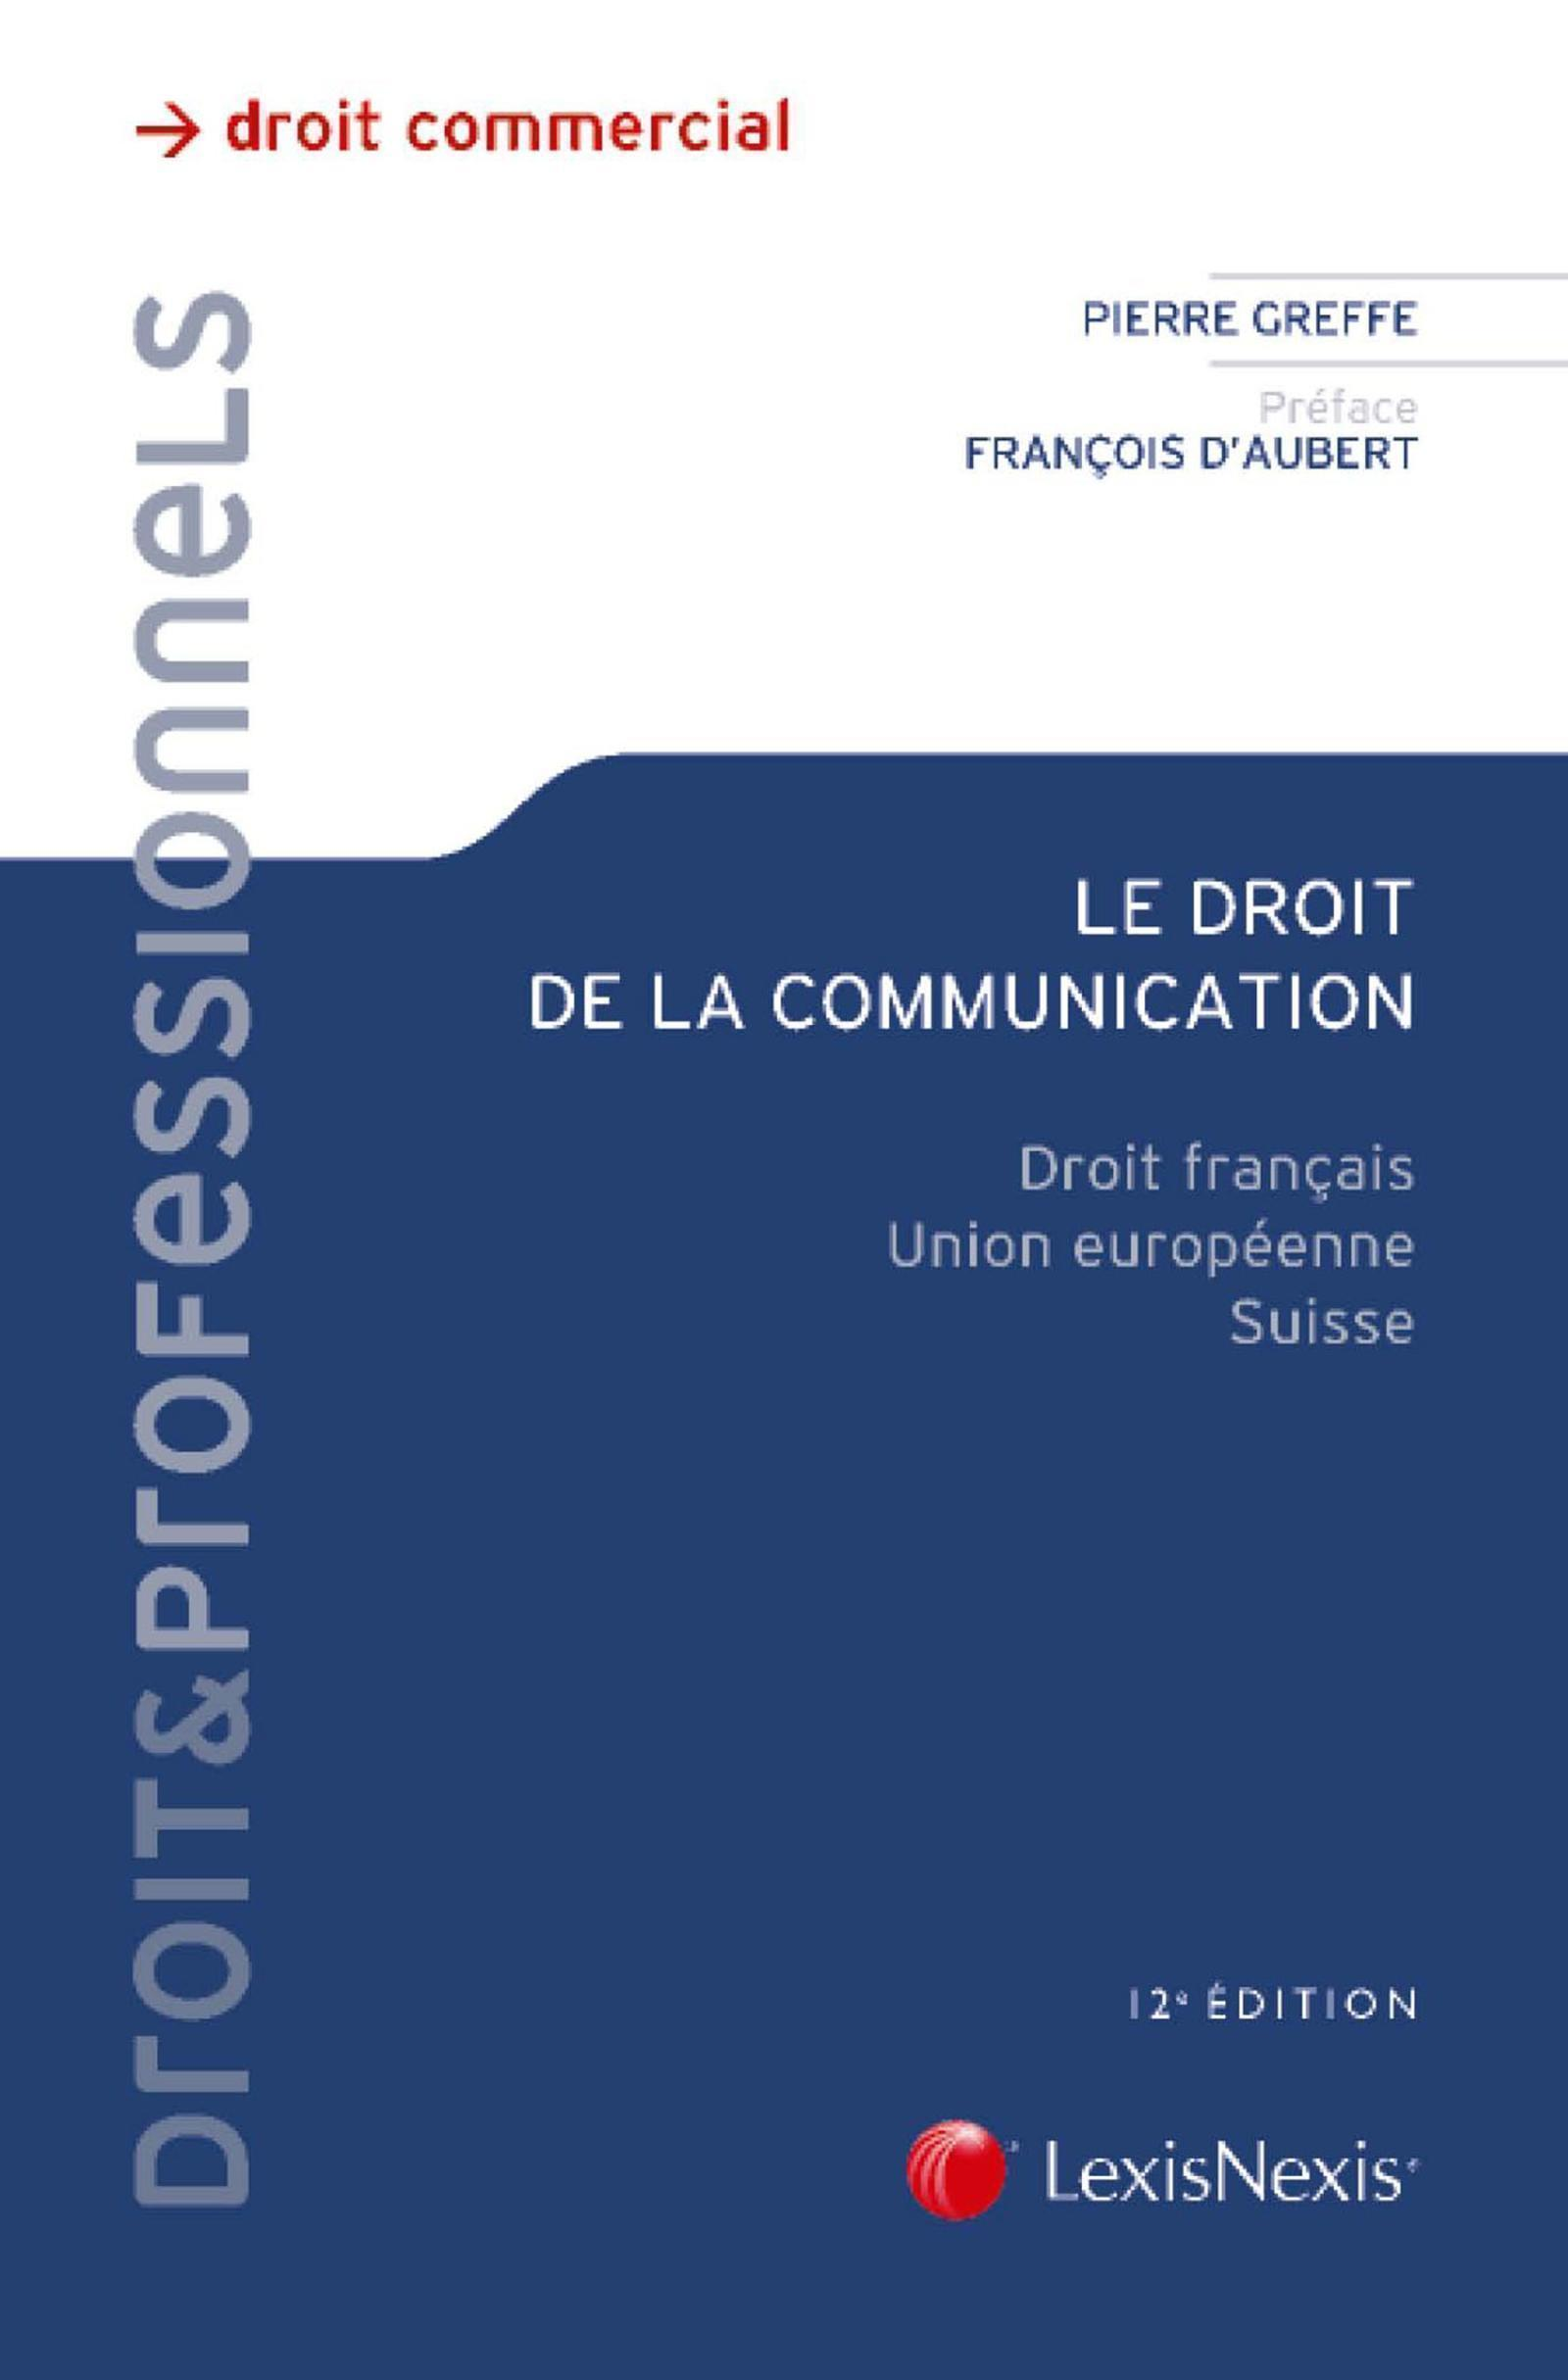 LE DROIT DE LA COMMUNICATION - DROIT FRANCAIS. UNION EUROPEENNE. SUISSE.